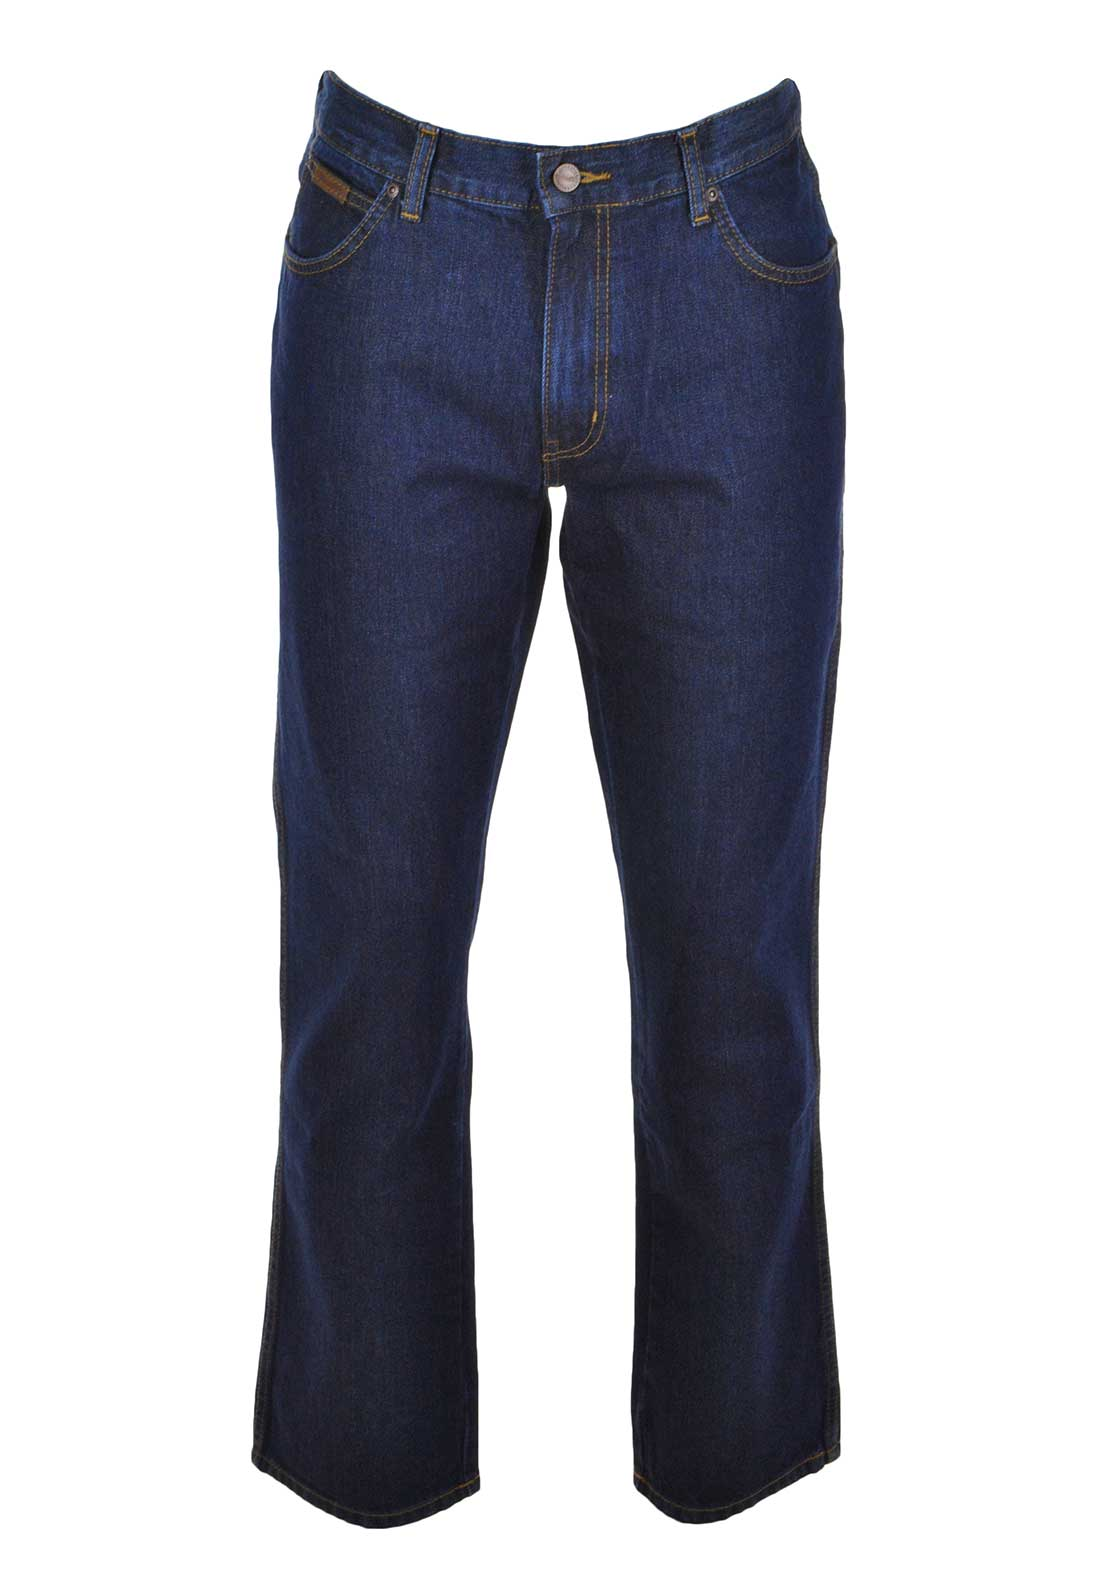 Wrangler Texas Stretch Regular Fit Jeans, Darkstone